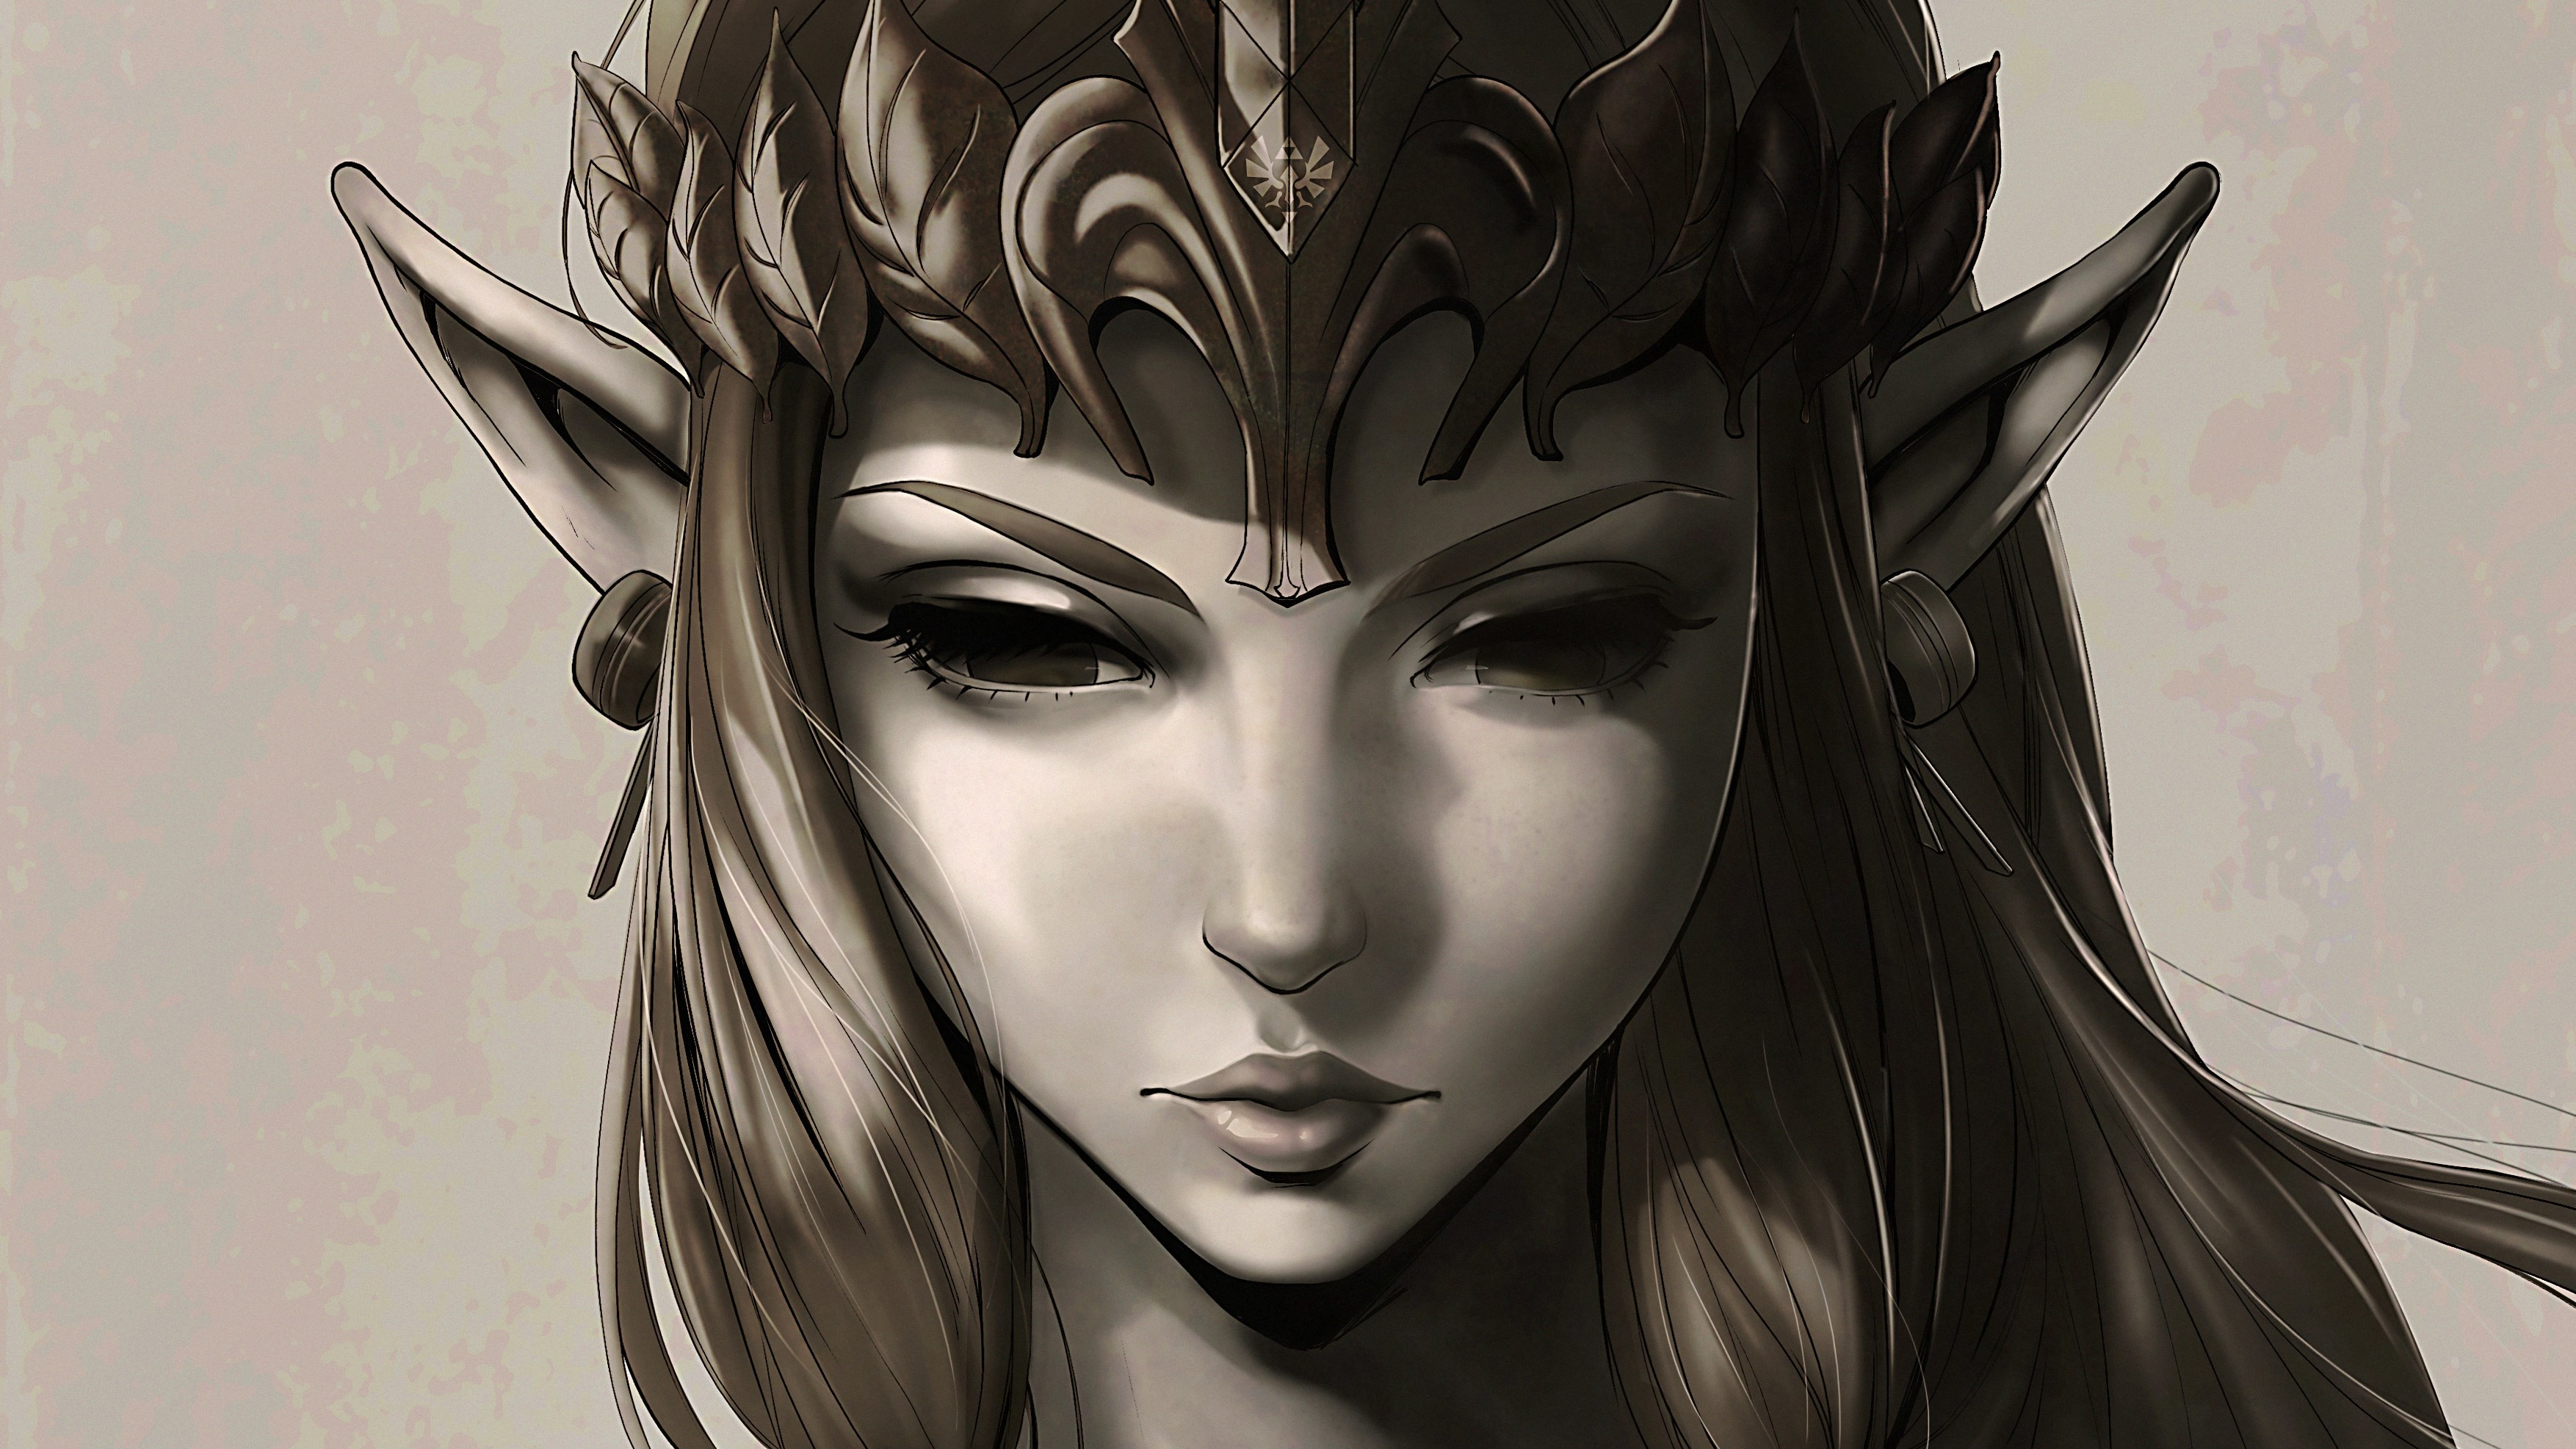 Twilight Princess Wallpapers 69 Images